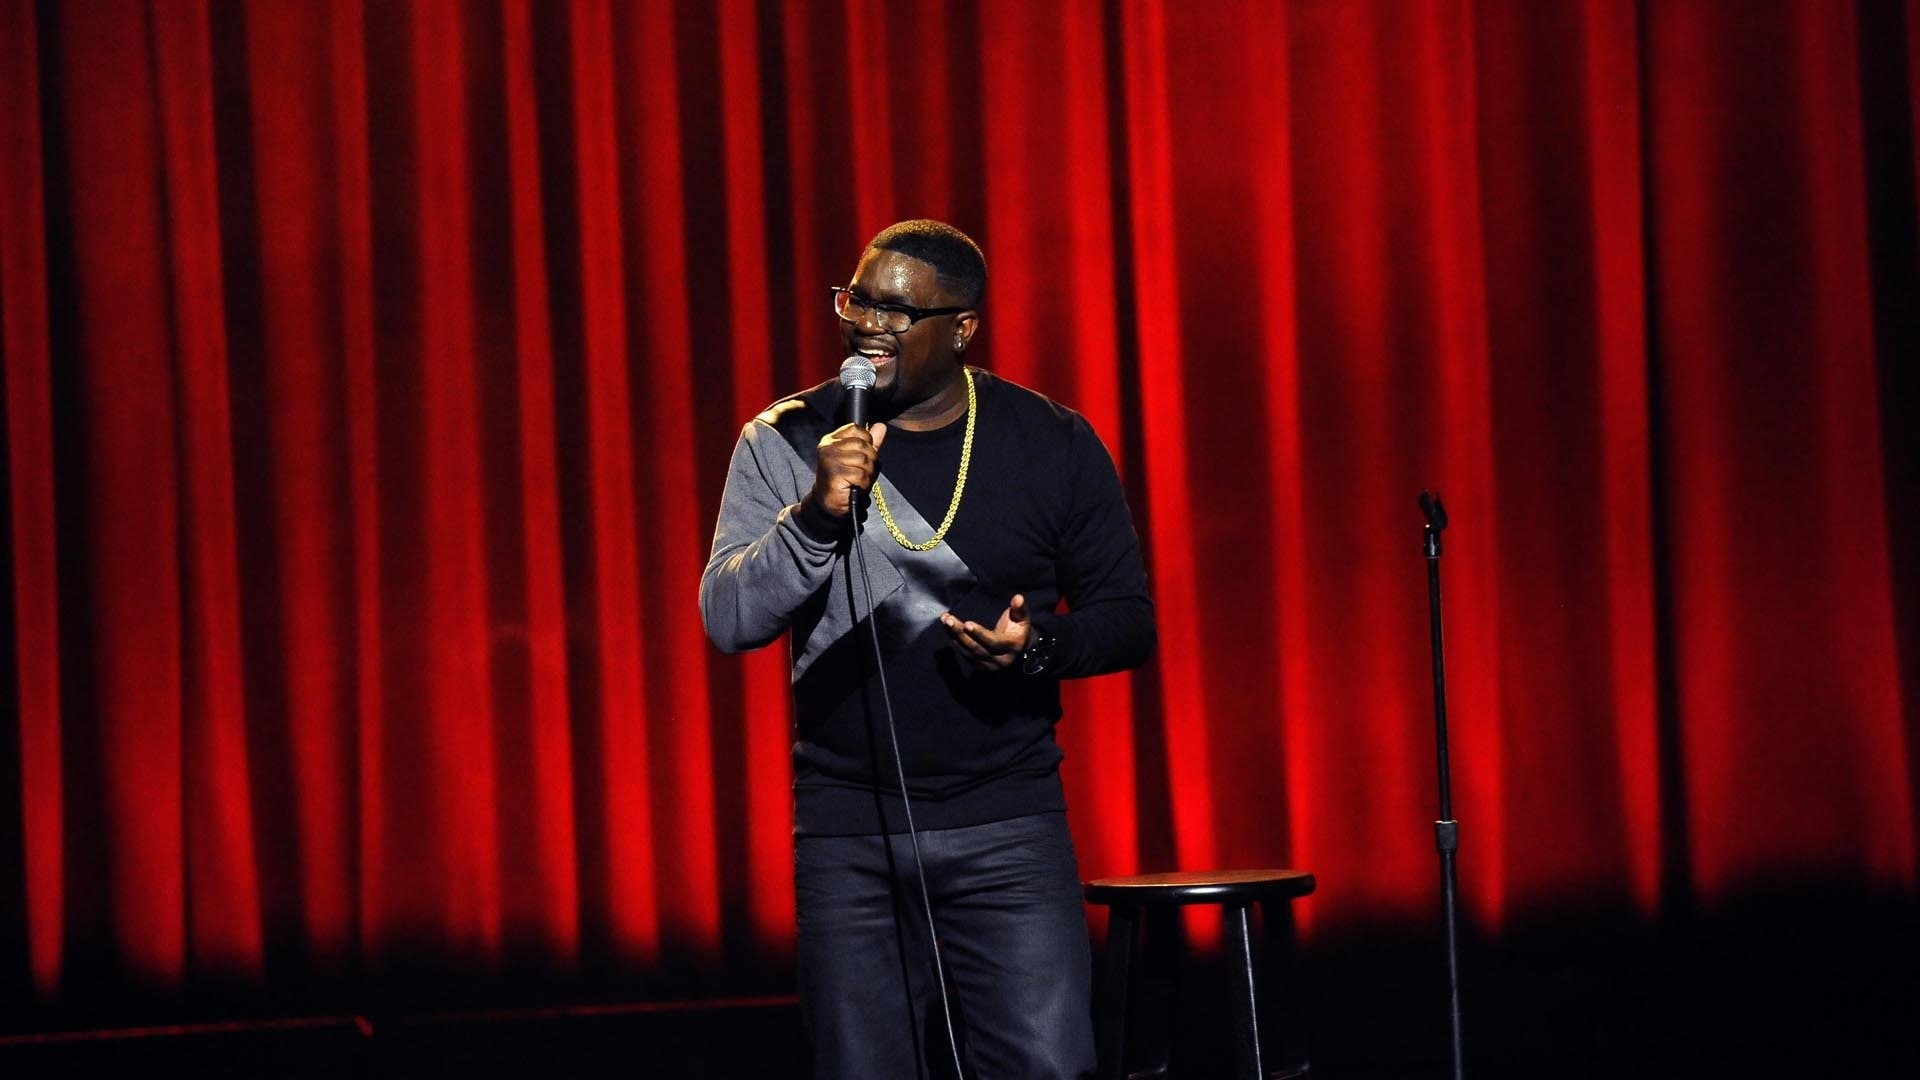 Kevin Hart Presents - Lil Rel Howery: RELevent